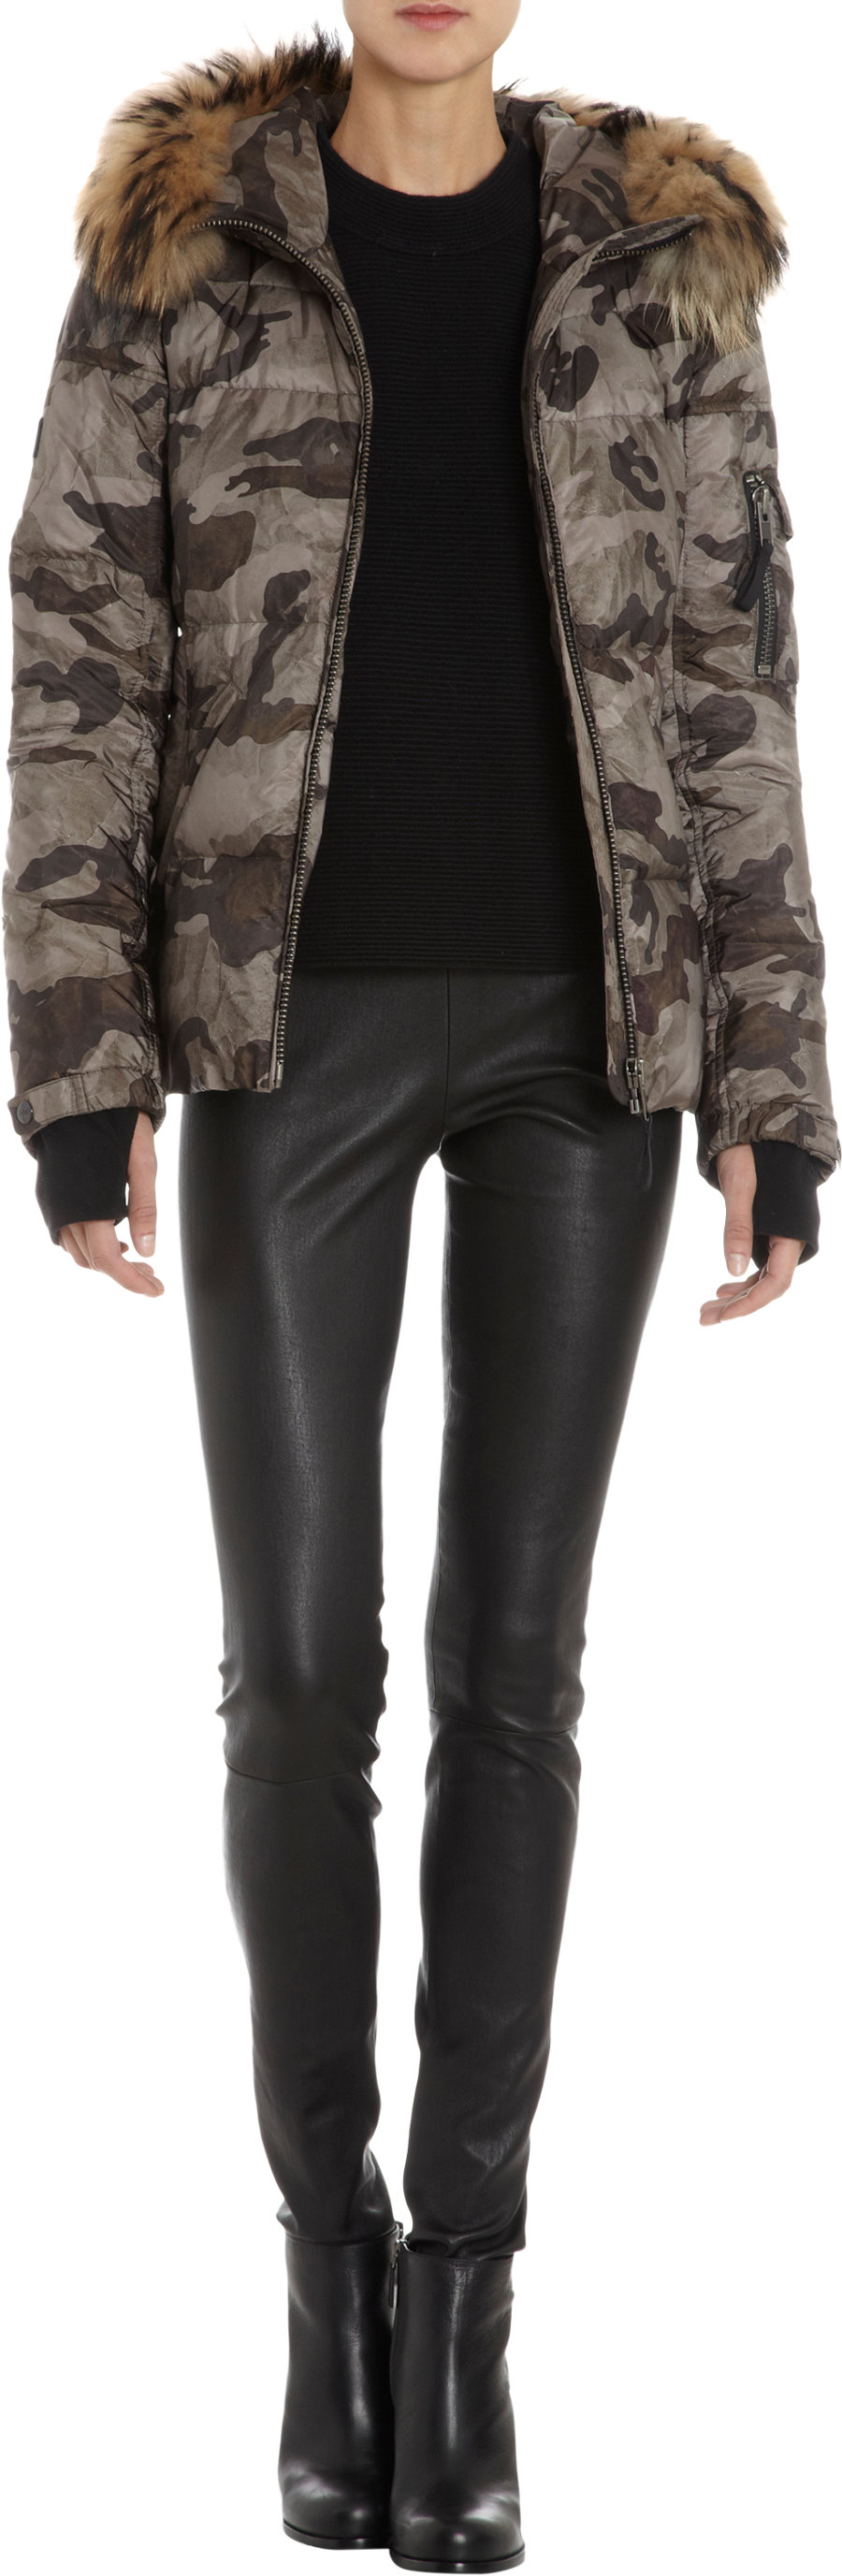 SAM Exclusively Ours Camo Puffer Coat $695